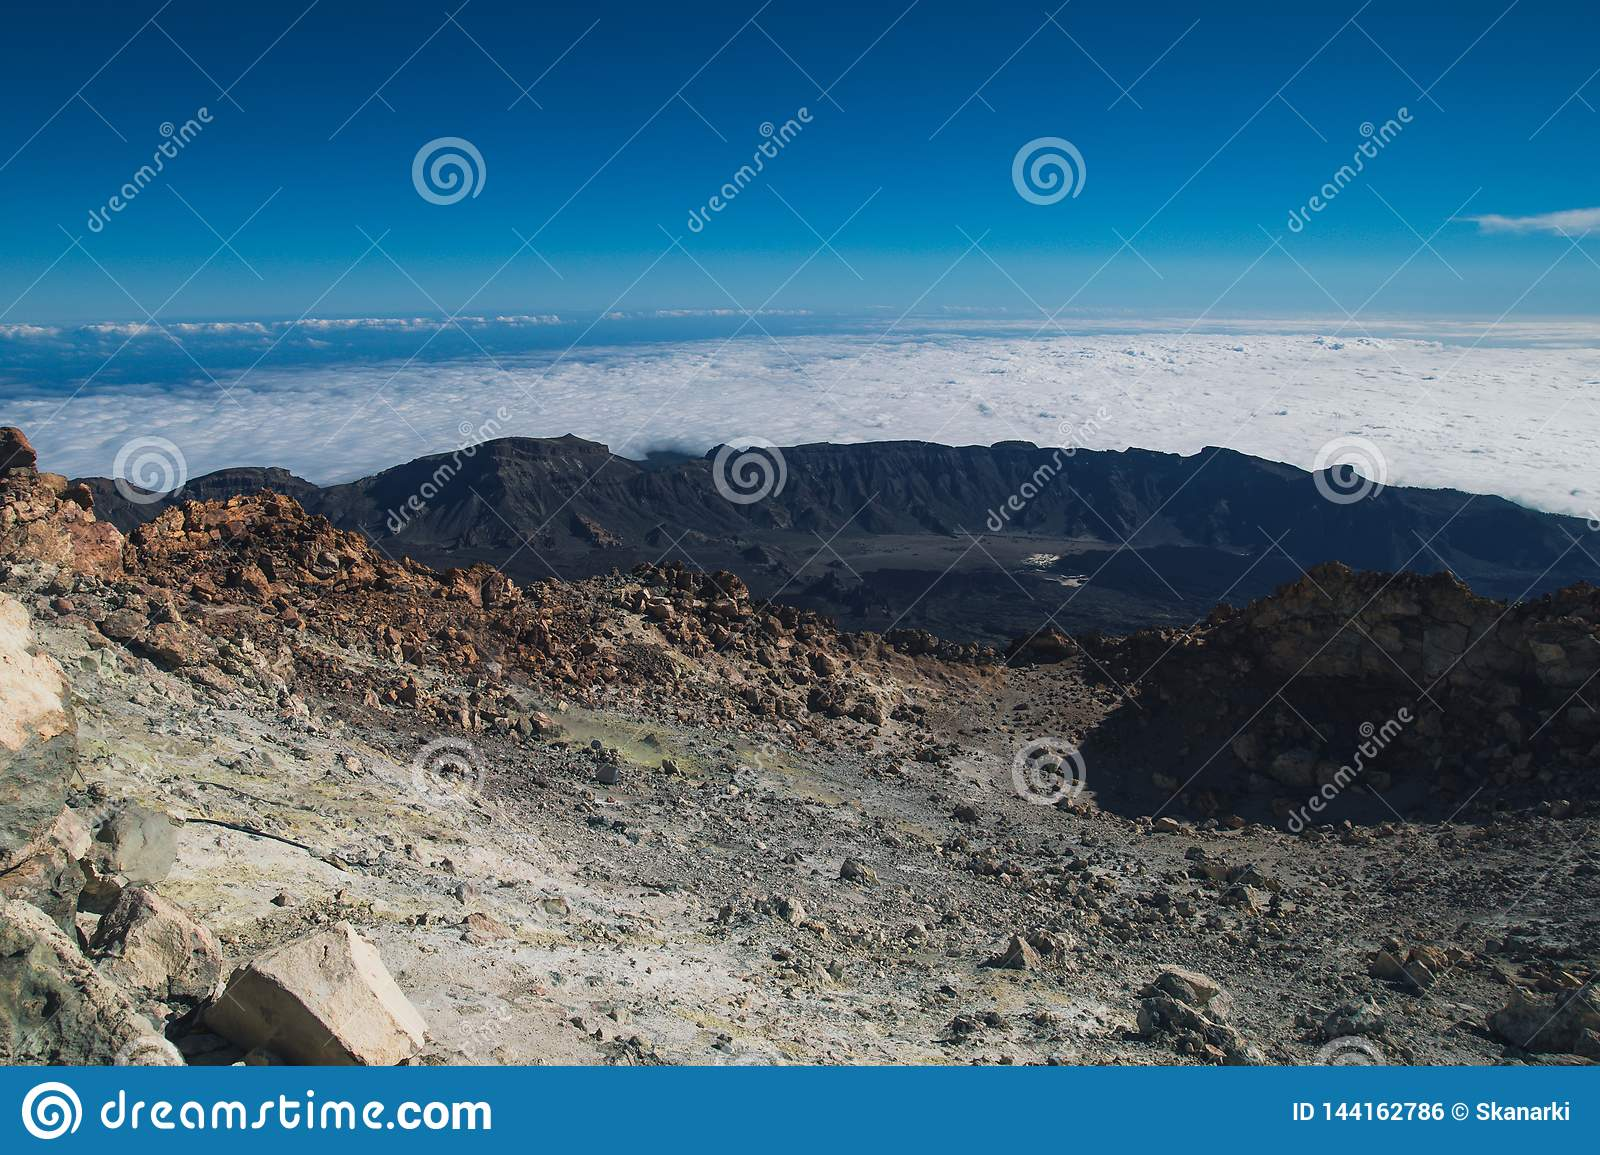 On top of a volcano. Teide. Volcano on Tenerife. Spain. The mountains.